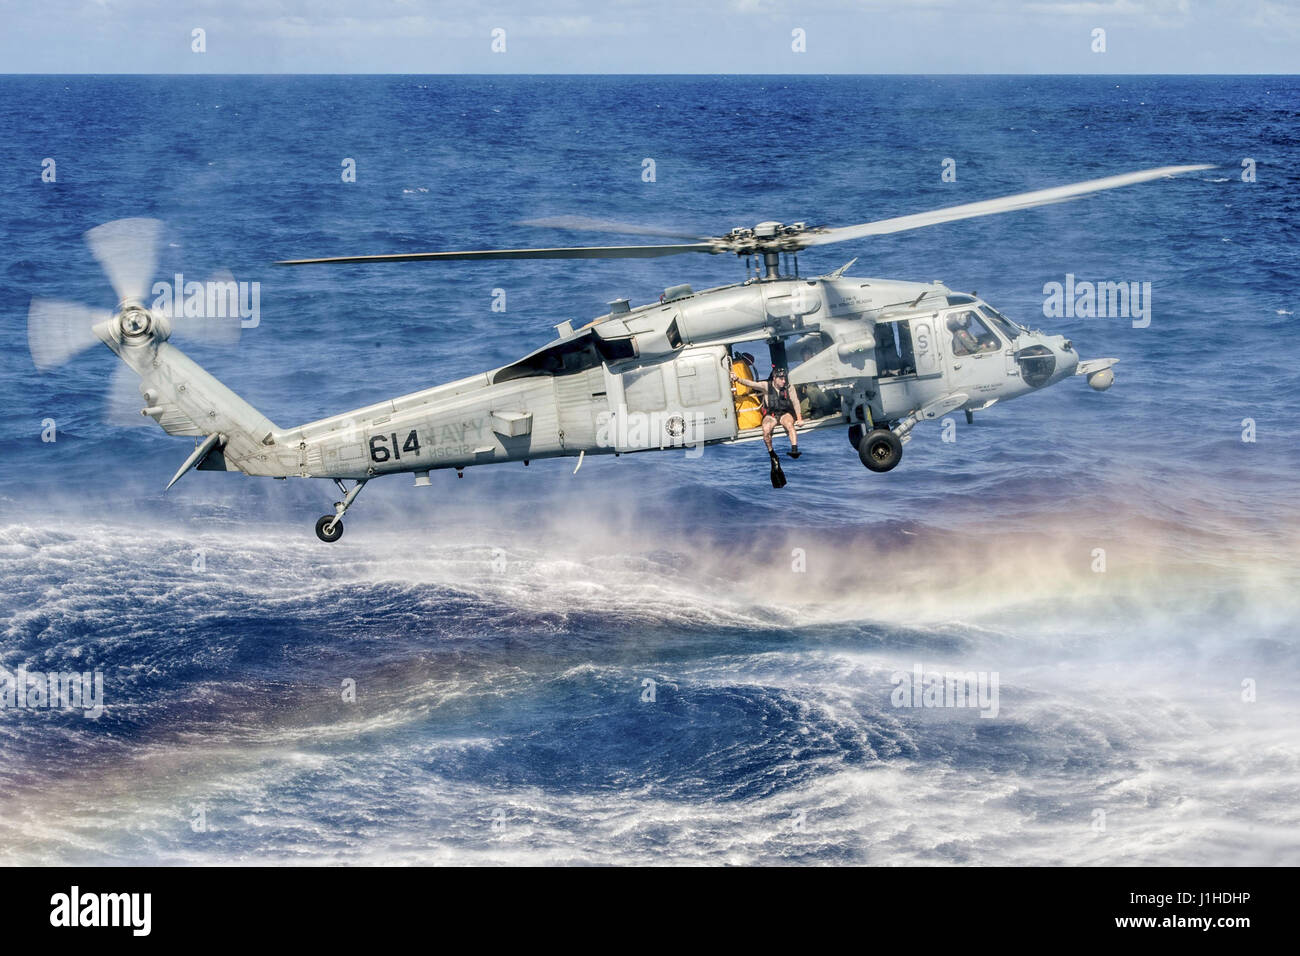 Navy Officer prepares to jump from an MH-60S Seahawk during search and rescue training - Stock Image